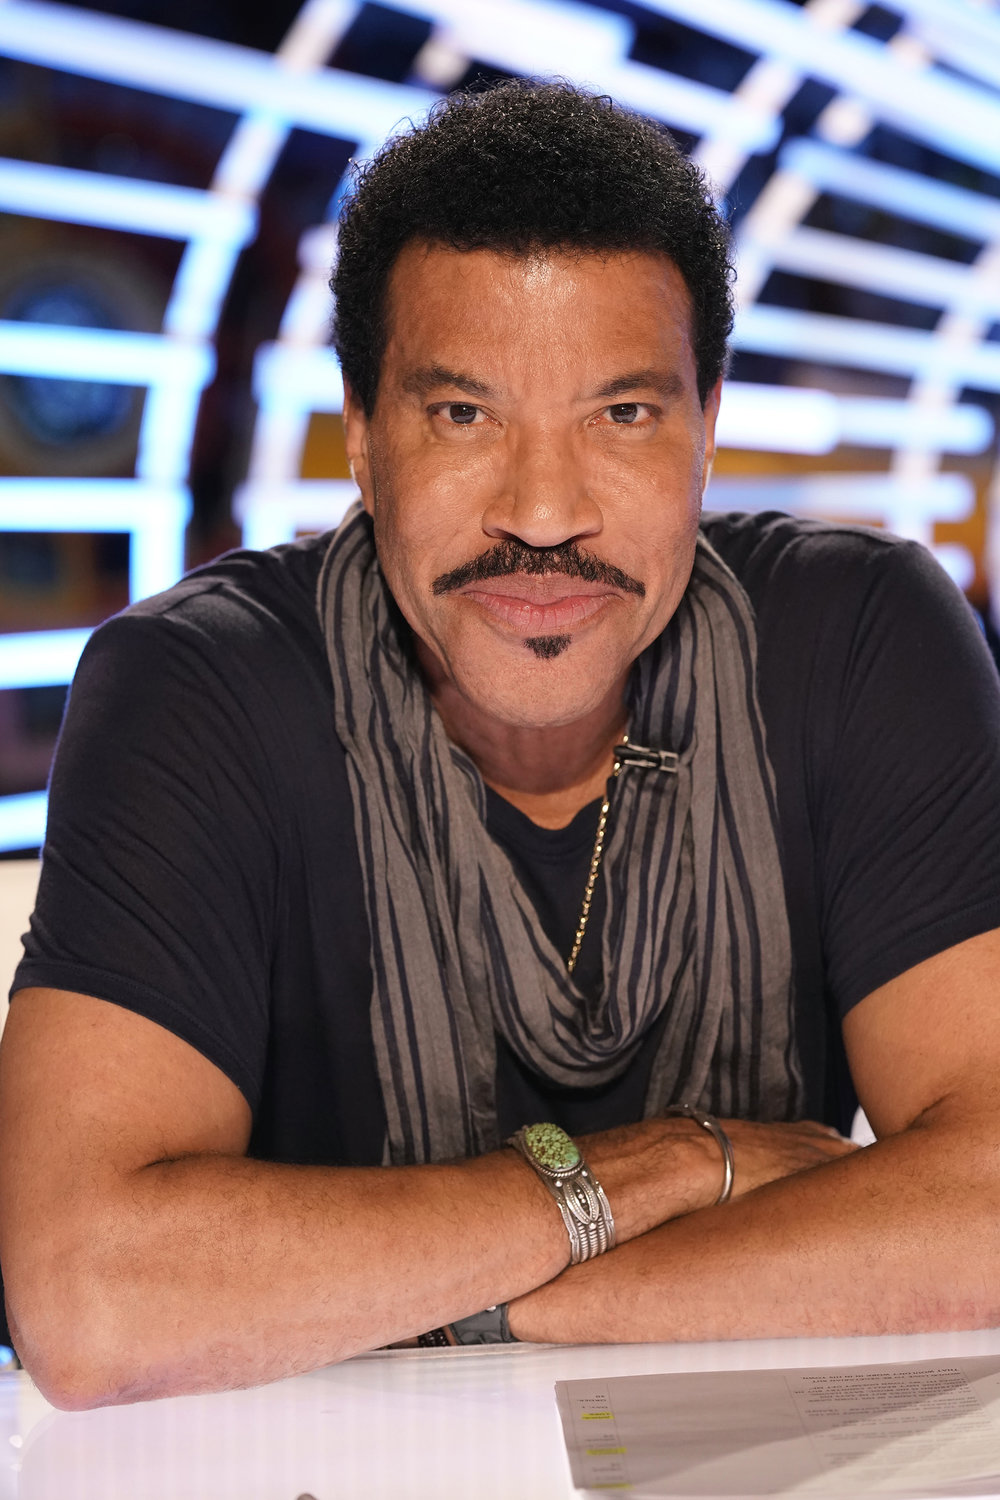 Lionel Richie Photo: ABC/Alfonso Bresciani